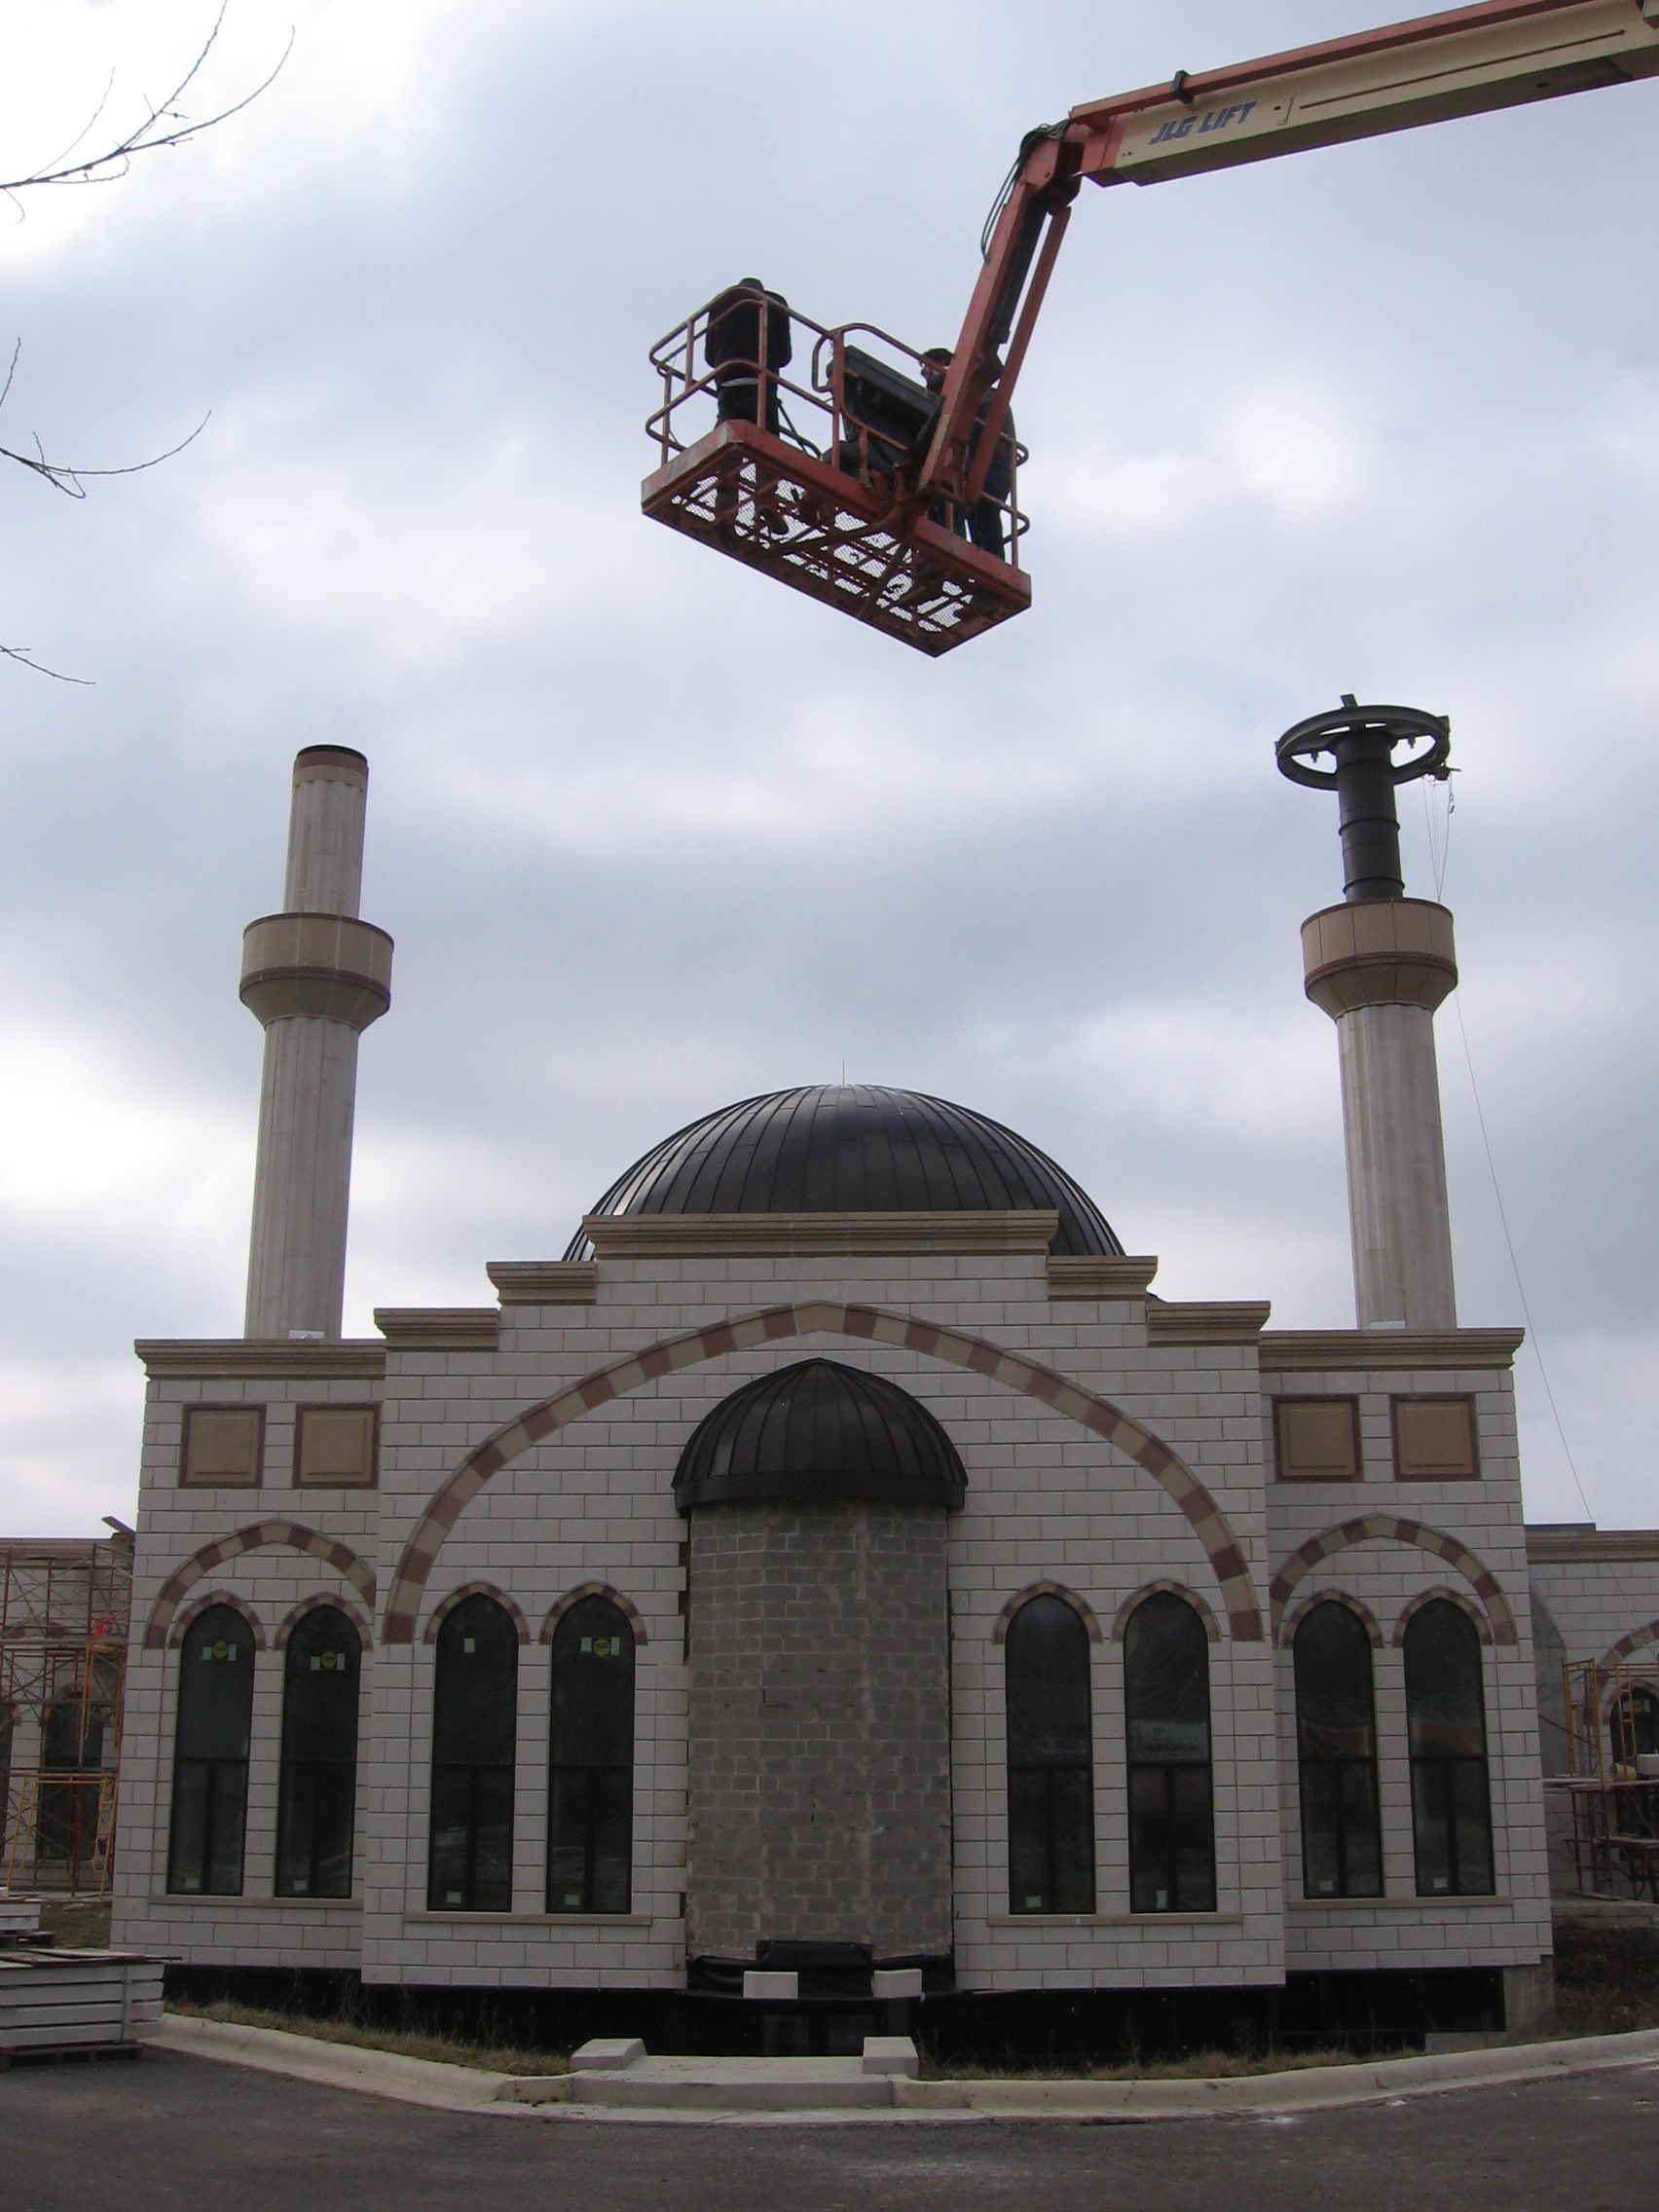 Ffilming oustide the DarusSalam Foundation mosque in Lombard, Illinois with a 5d mark ii DSLR. Chicago Illinois mosque nonprofit fundraising video.